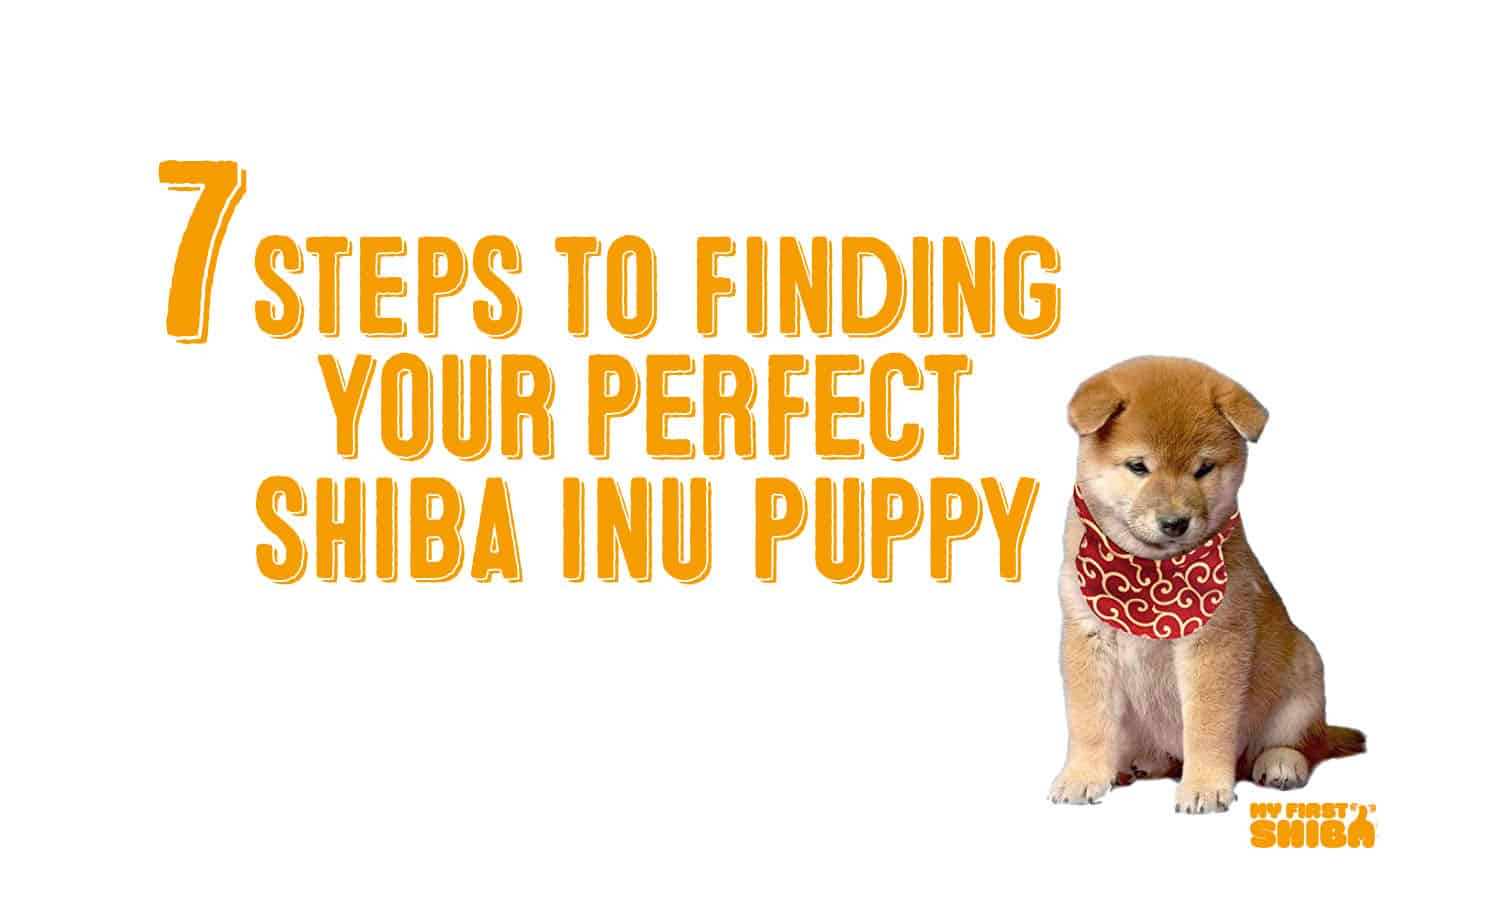 7 steps to find perfect shiba inu puppy